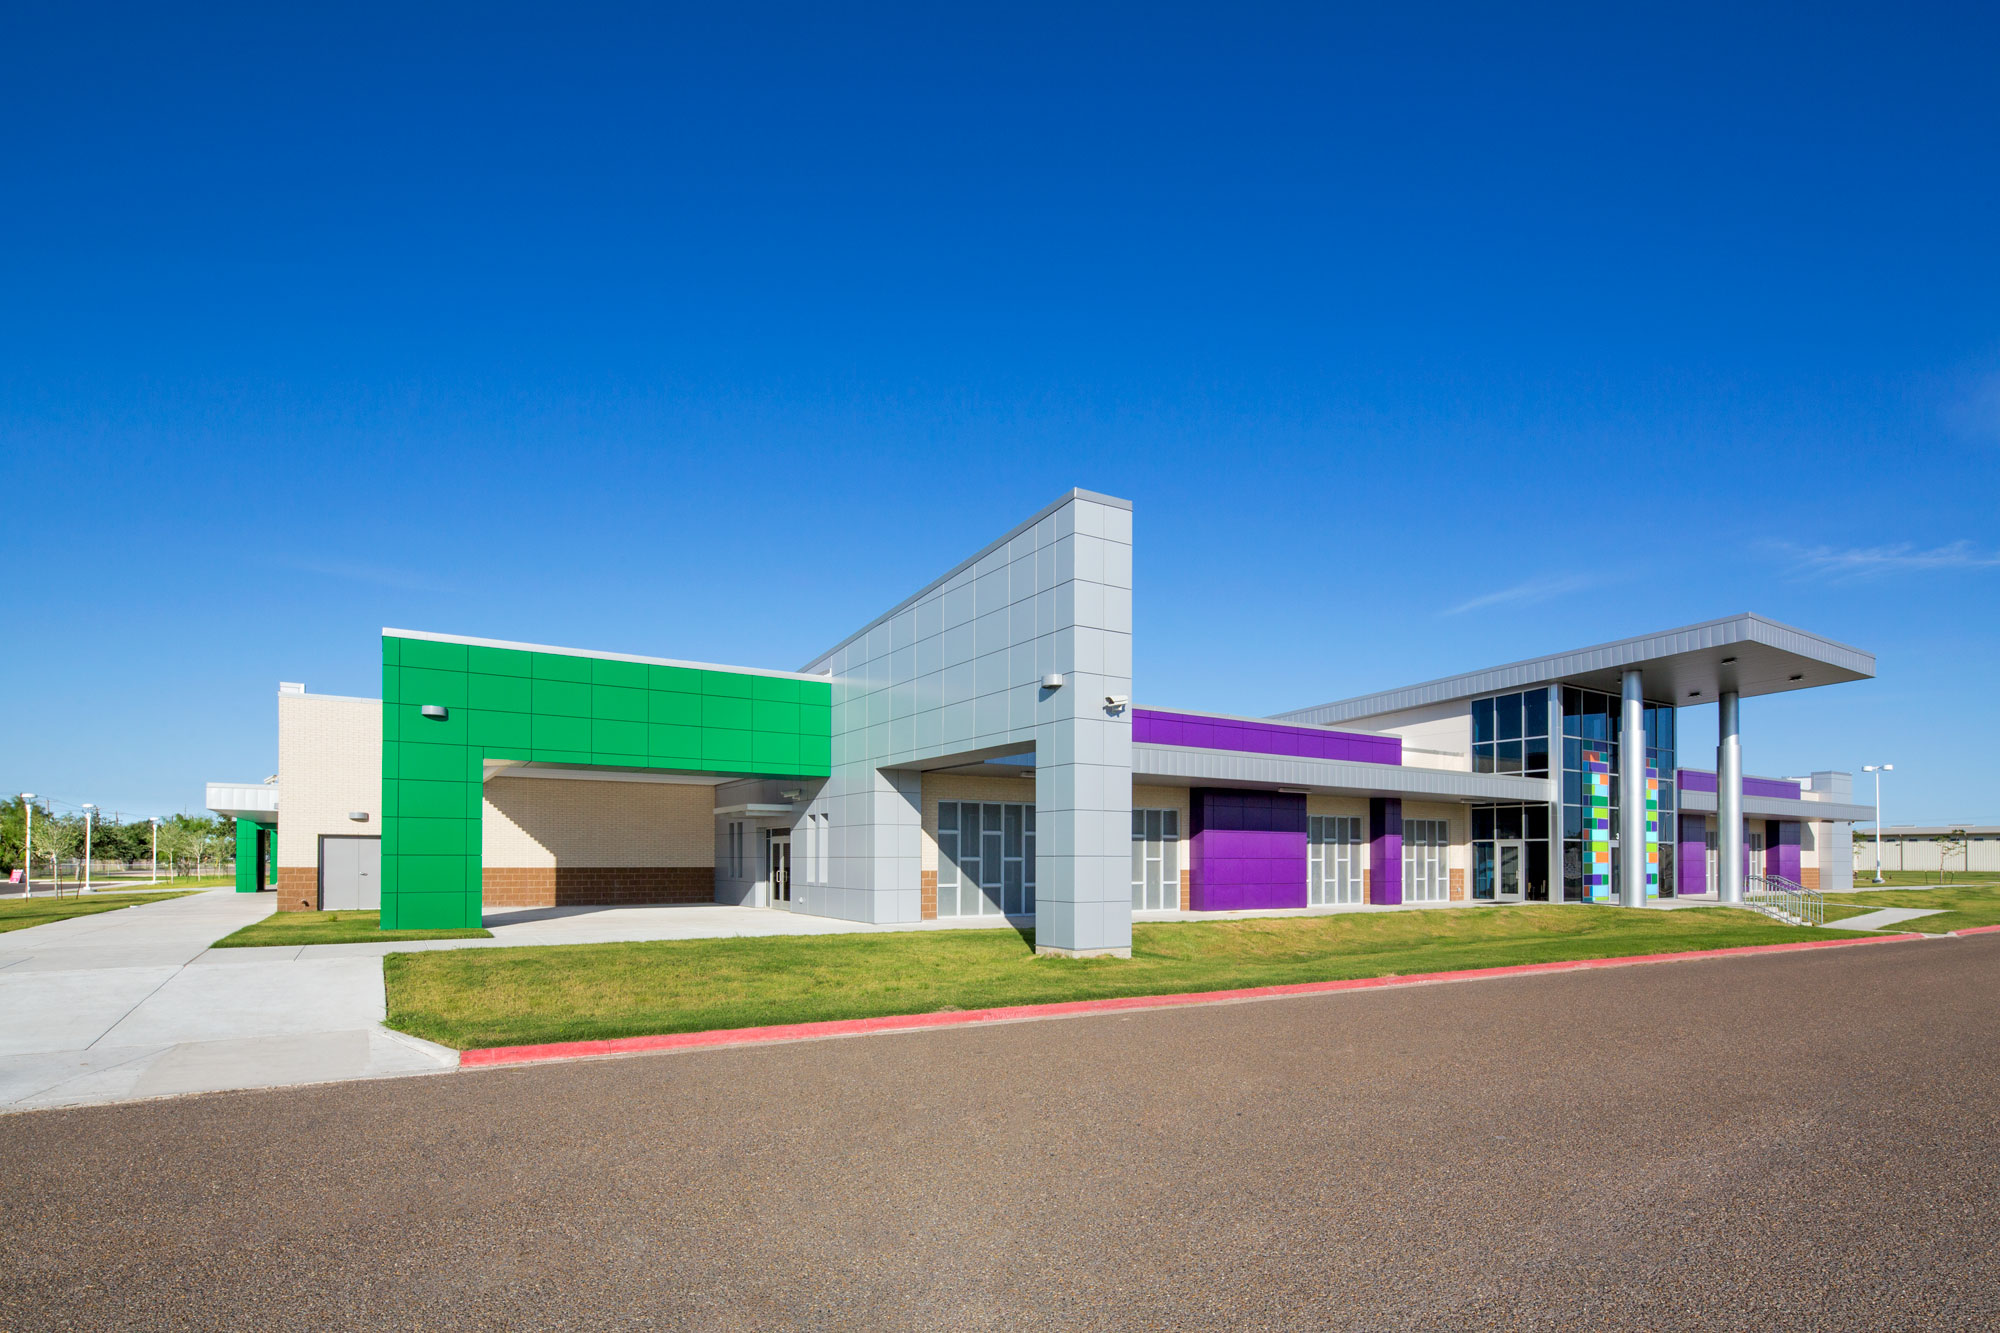 Alucobond, STC Technology Campus, EGV Architects, Bowman Distributing, Photography John Faulk